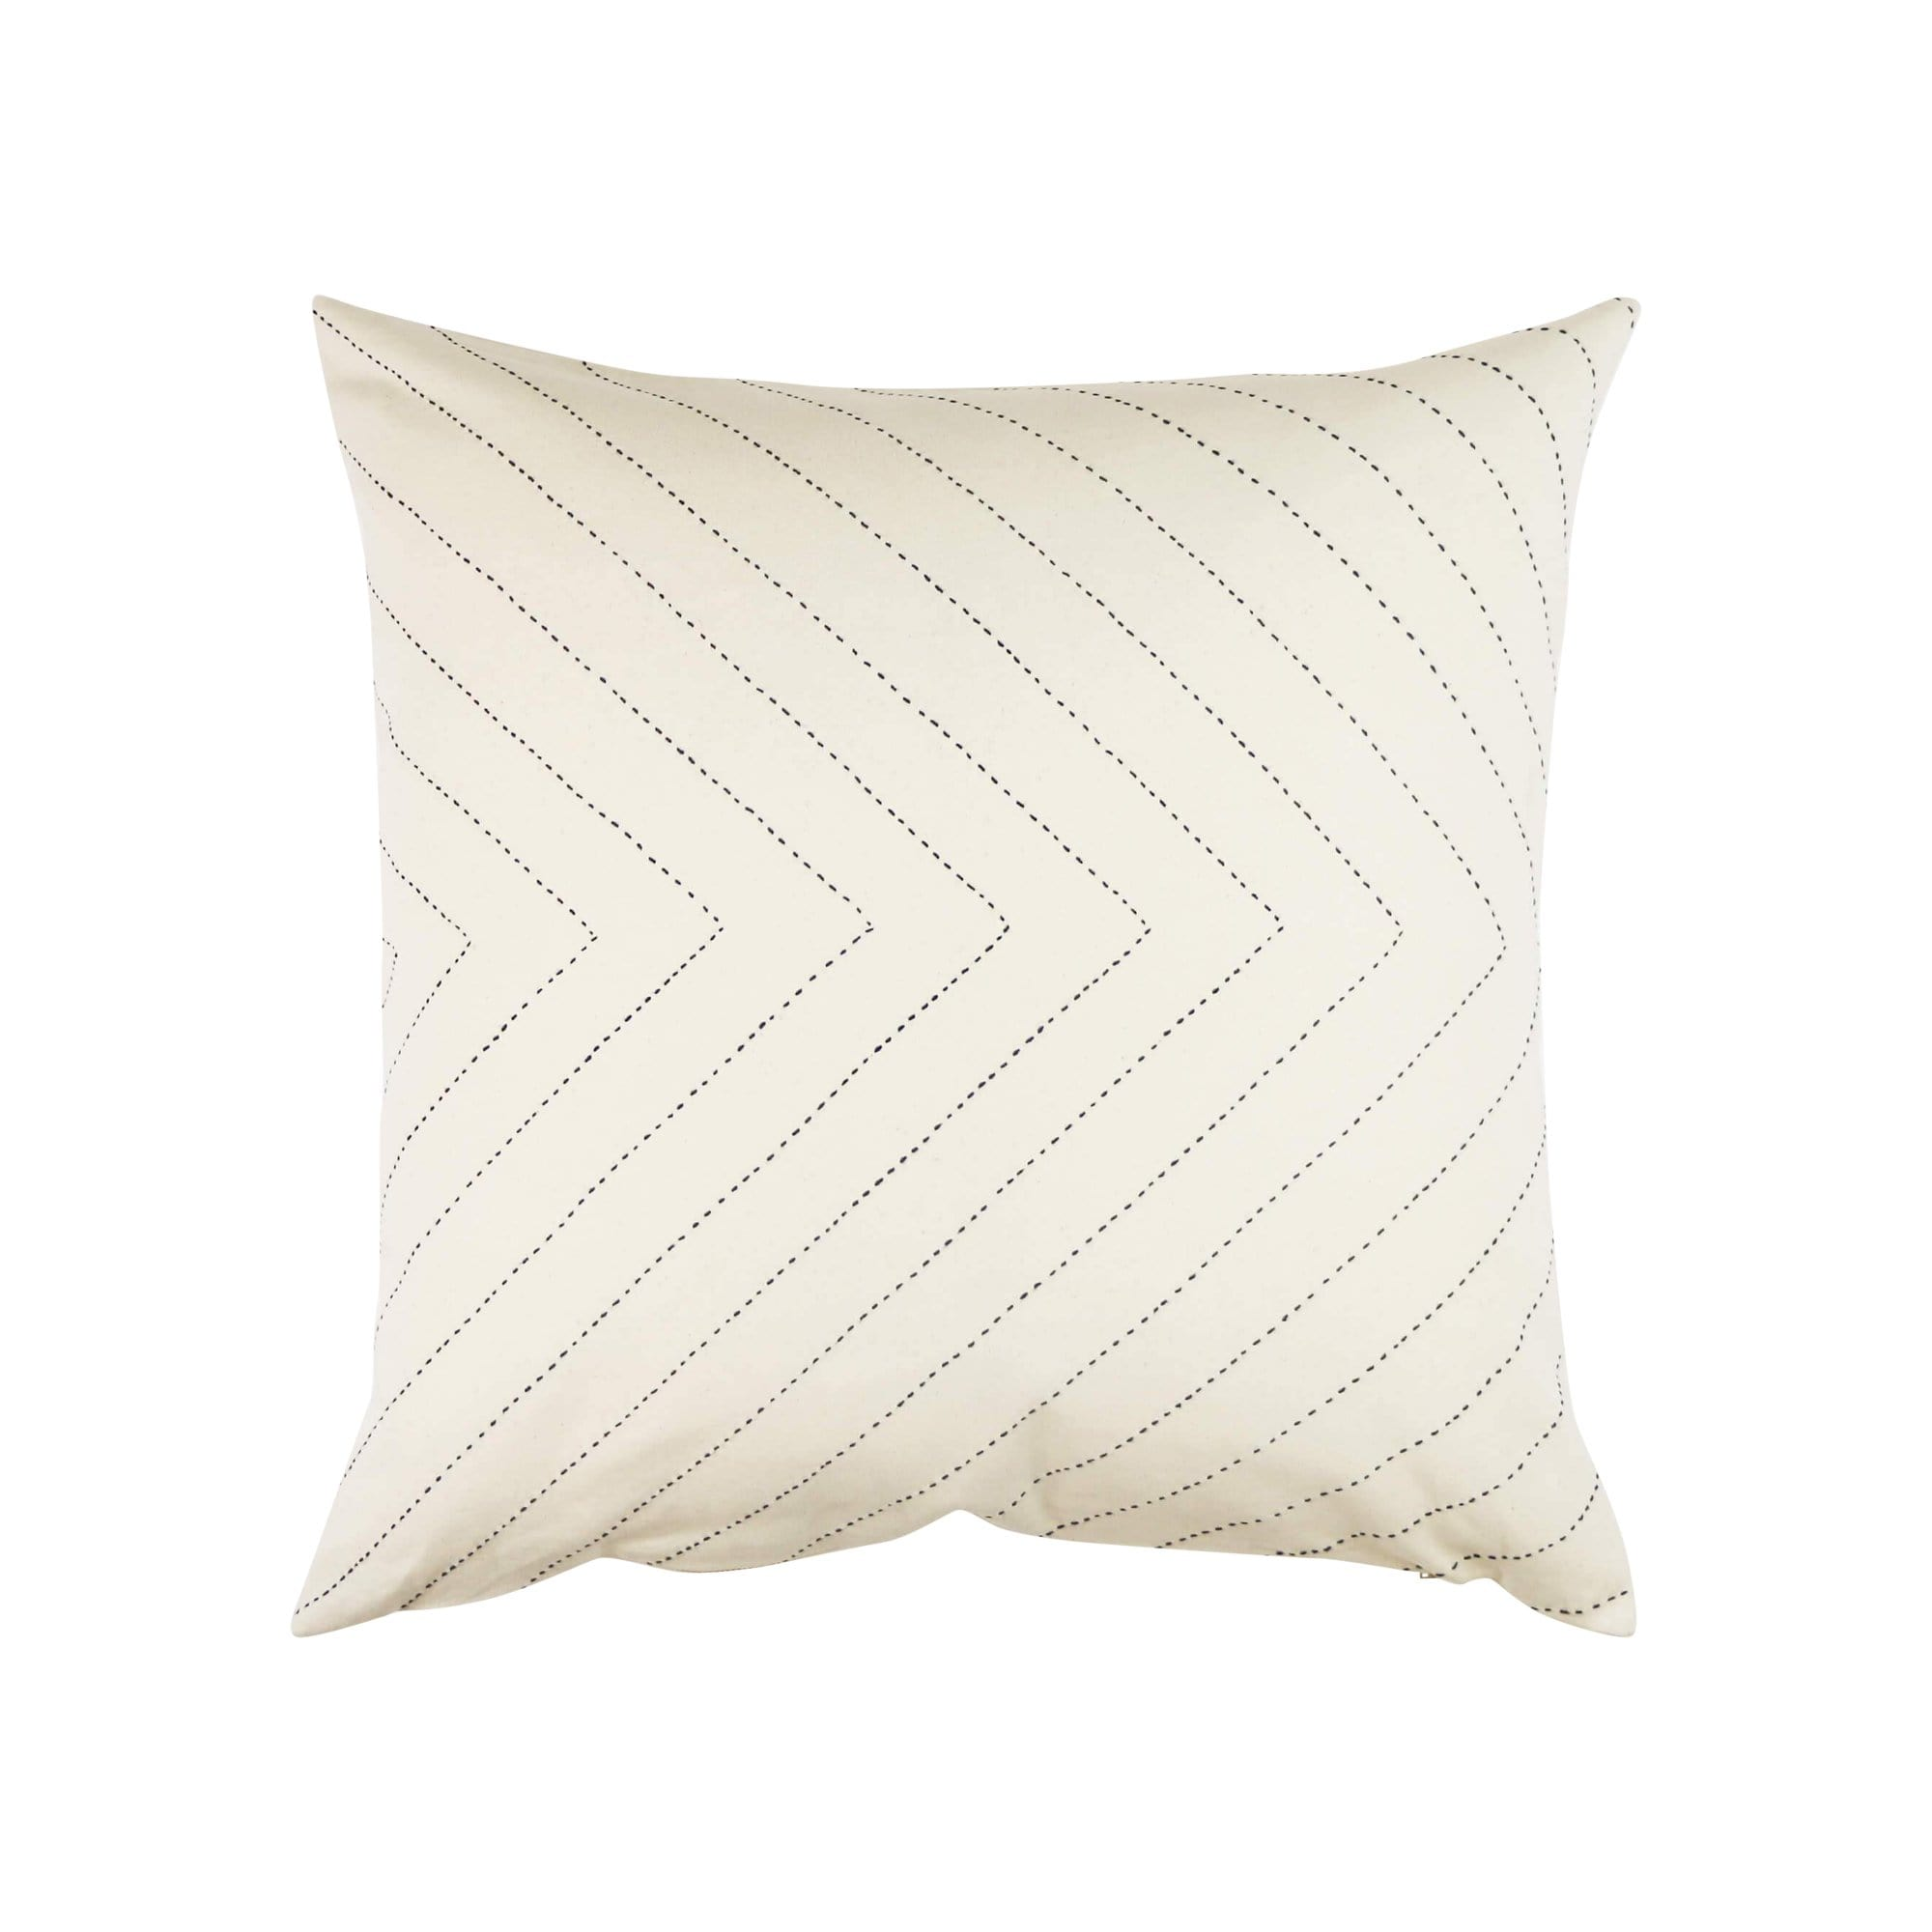 Anchal Project Cushions + Throws Bone Arrow-Stitch Throw Pillow